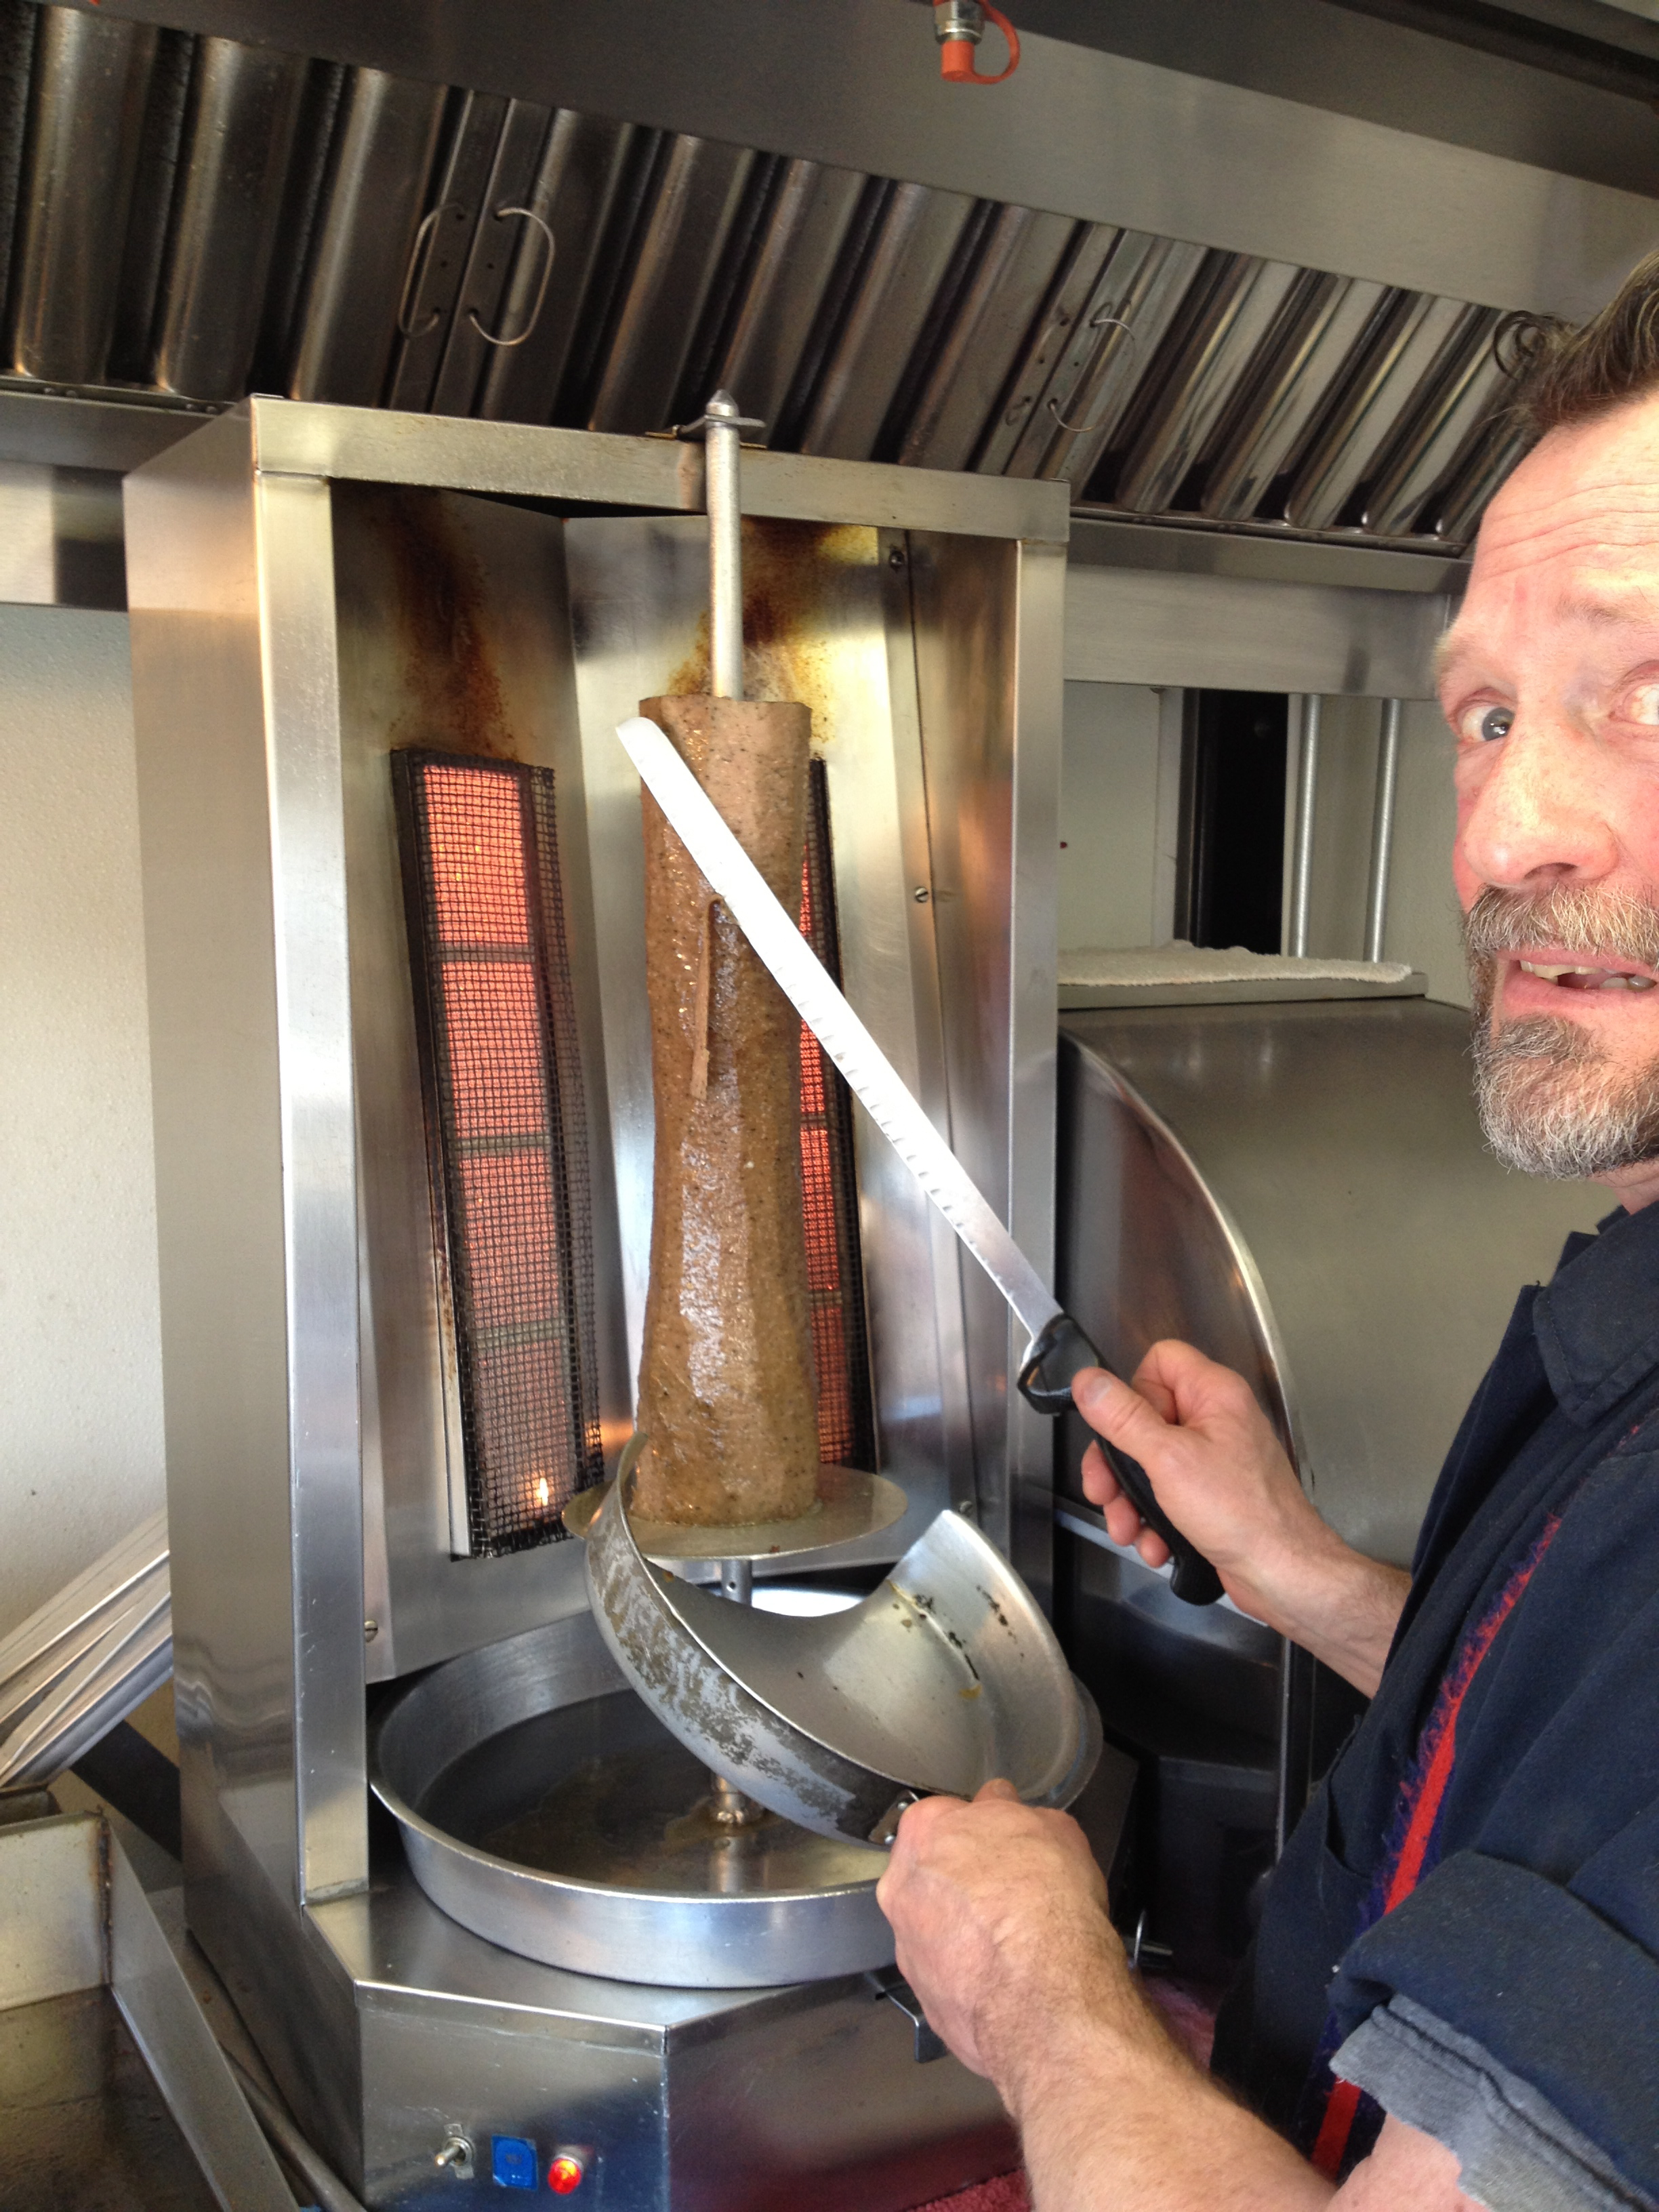 Rich at the Gyros Spot uses traditional rotisserie style meat